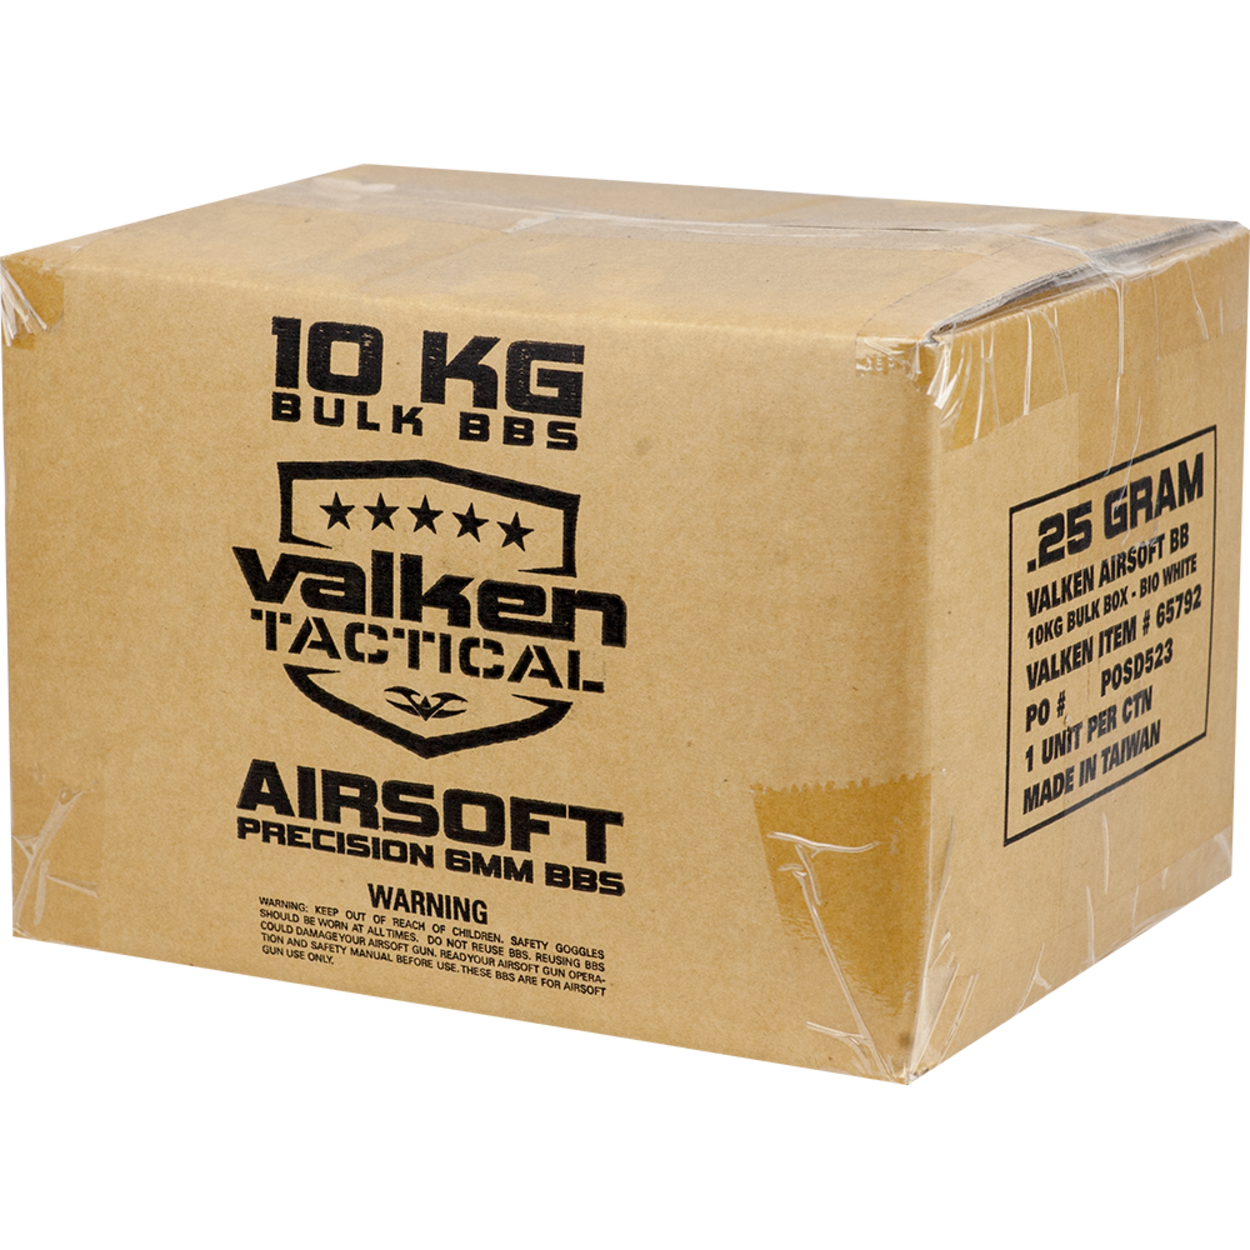 Valken Tactical 0.20g NON BIO Precision BB's 10kg Bulk Box - White